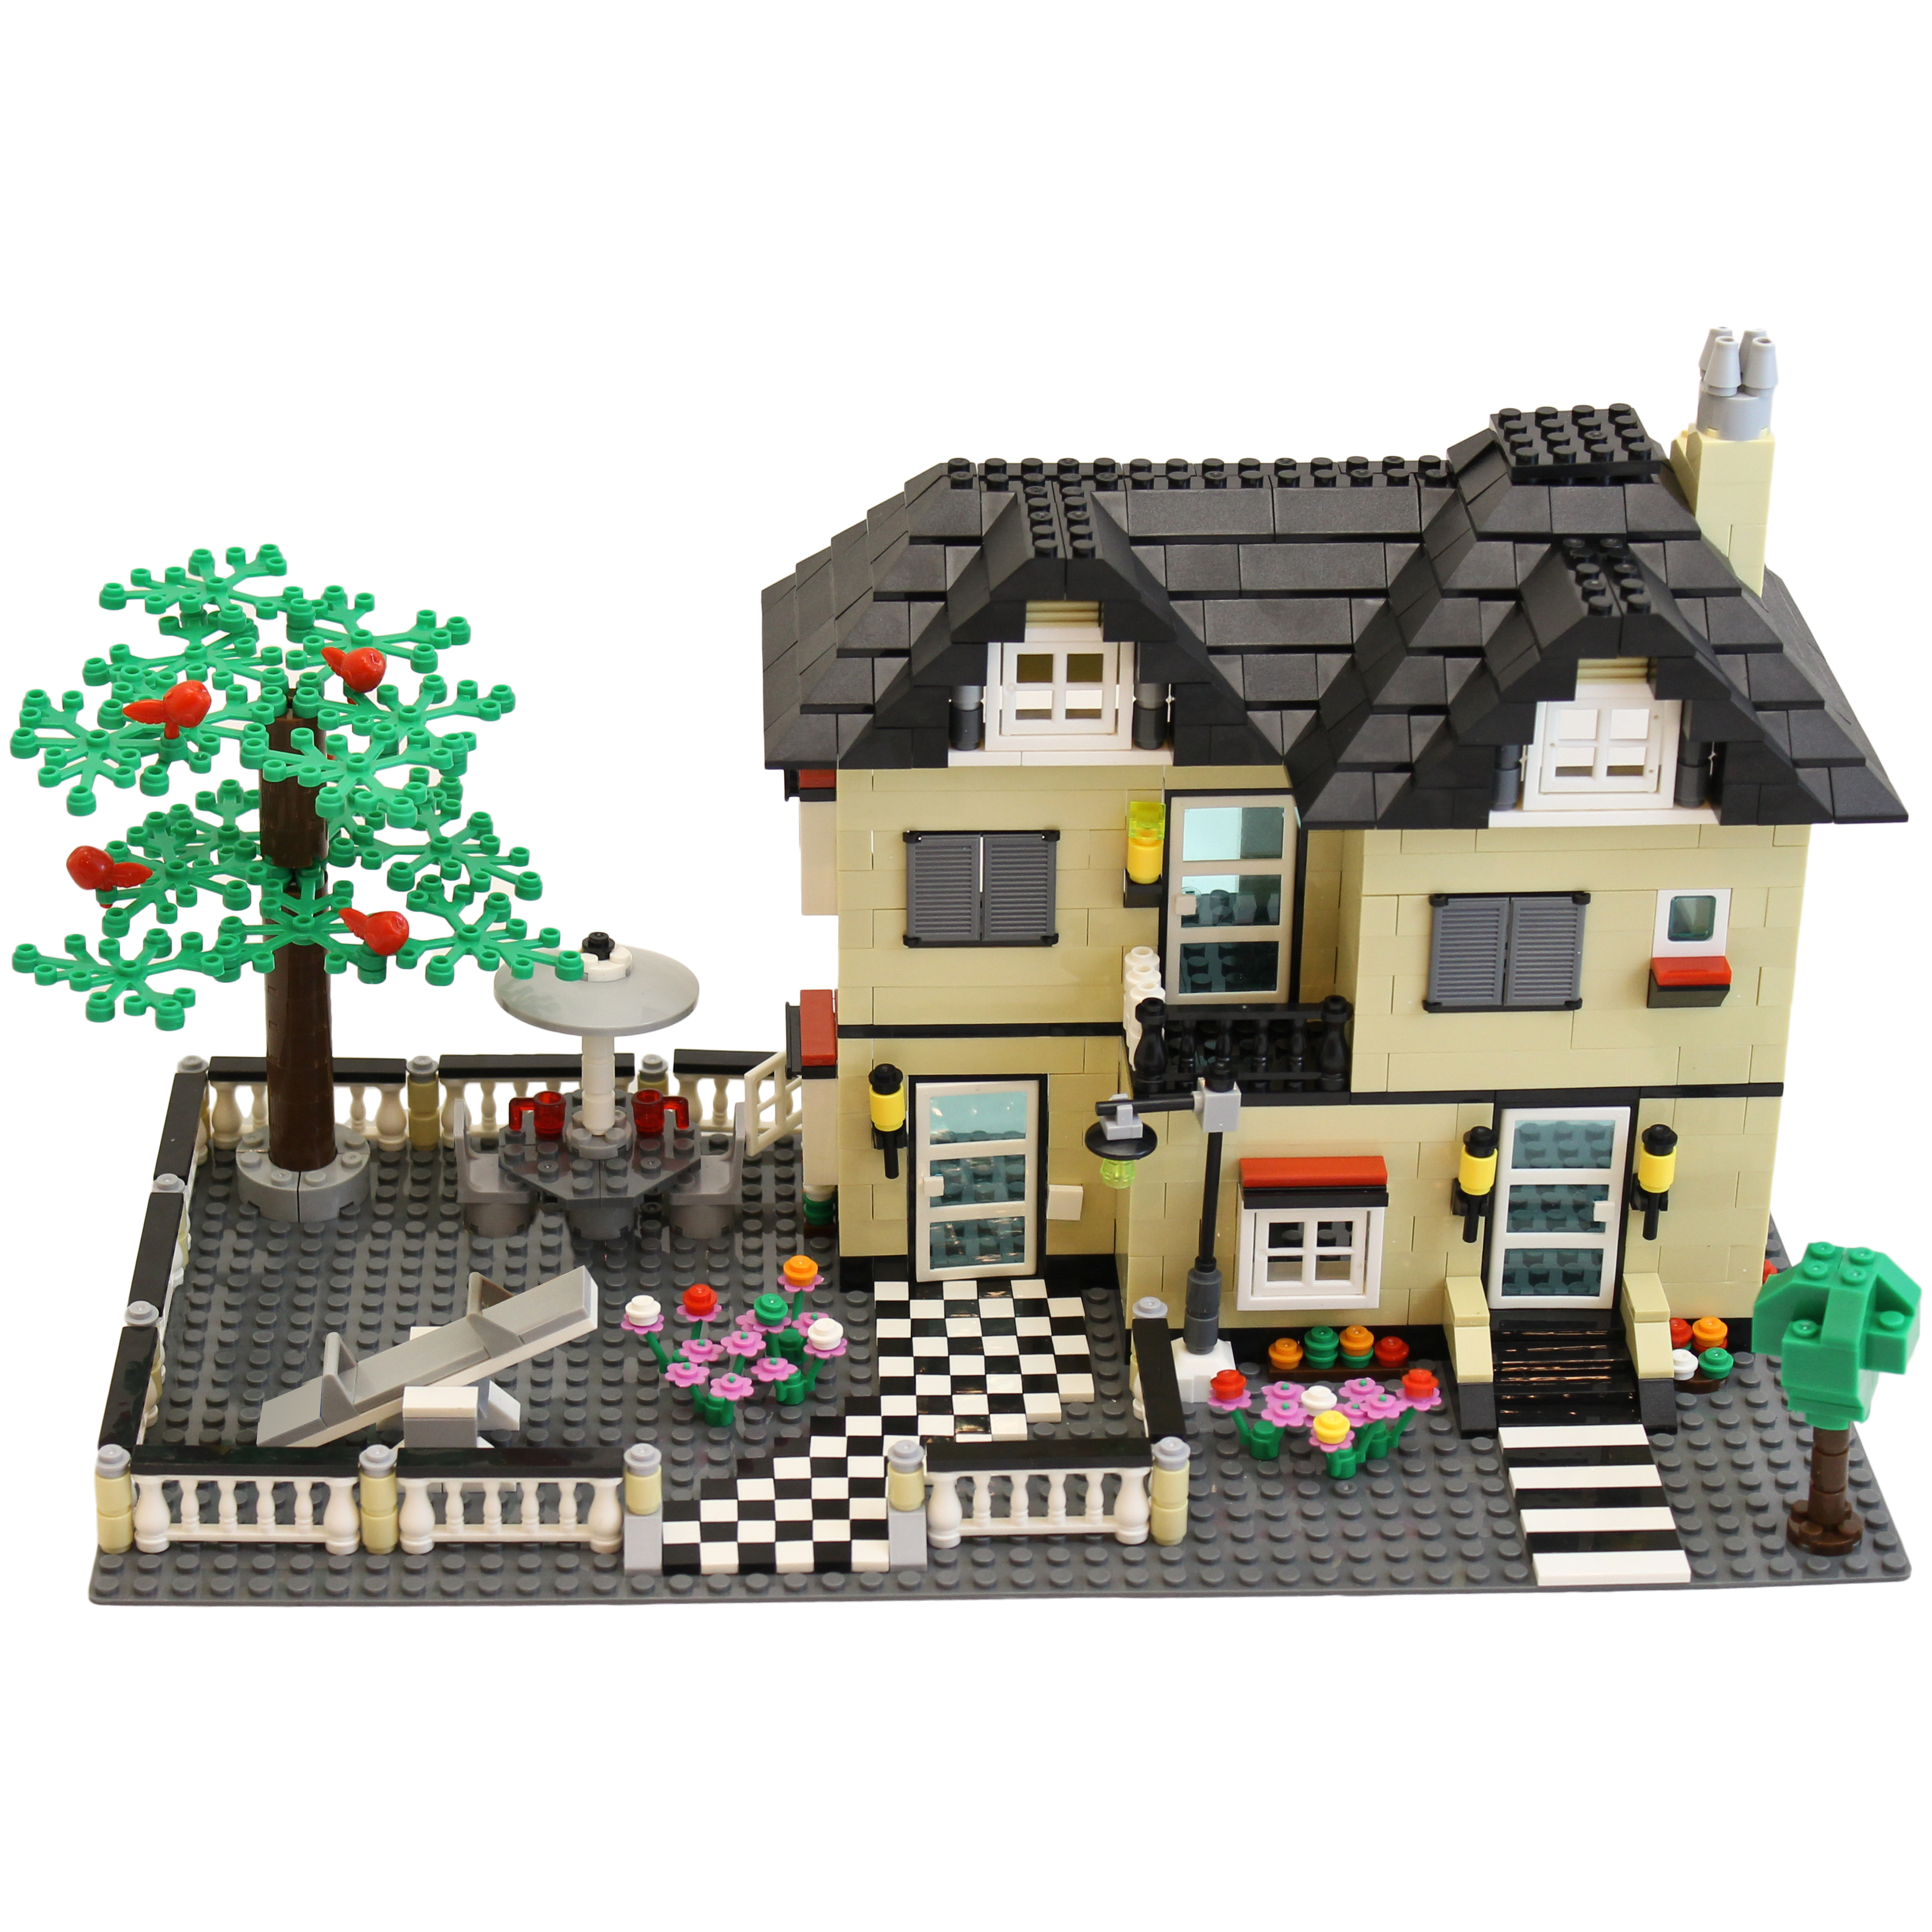 Dimple 816 Piece Toy Family Cottage Themed Interconnecting Building Block Set with Yard, Garden, Figurines and... by Dimple